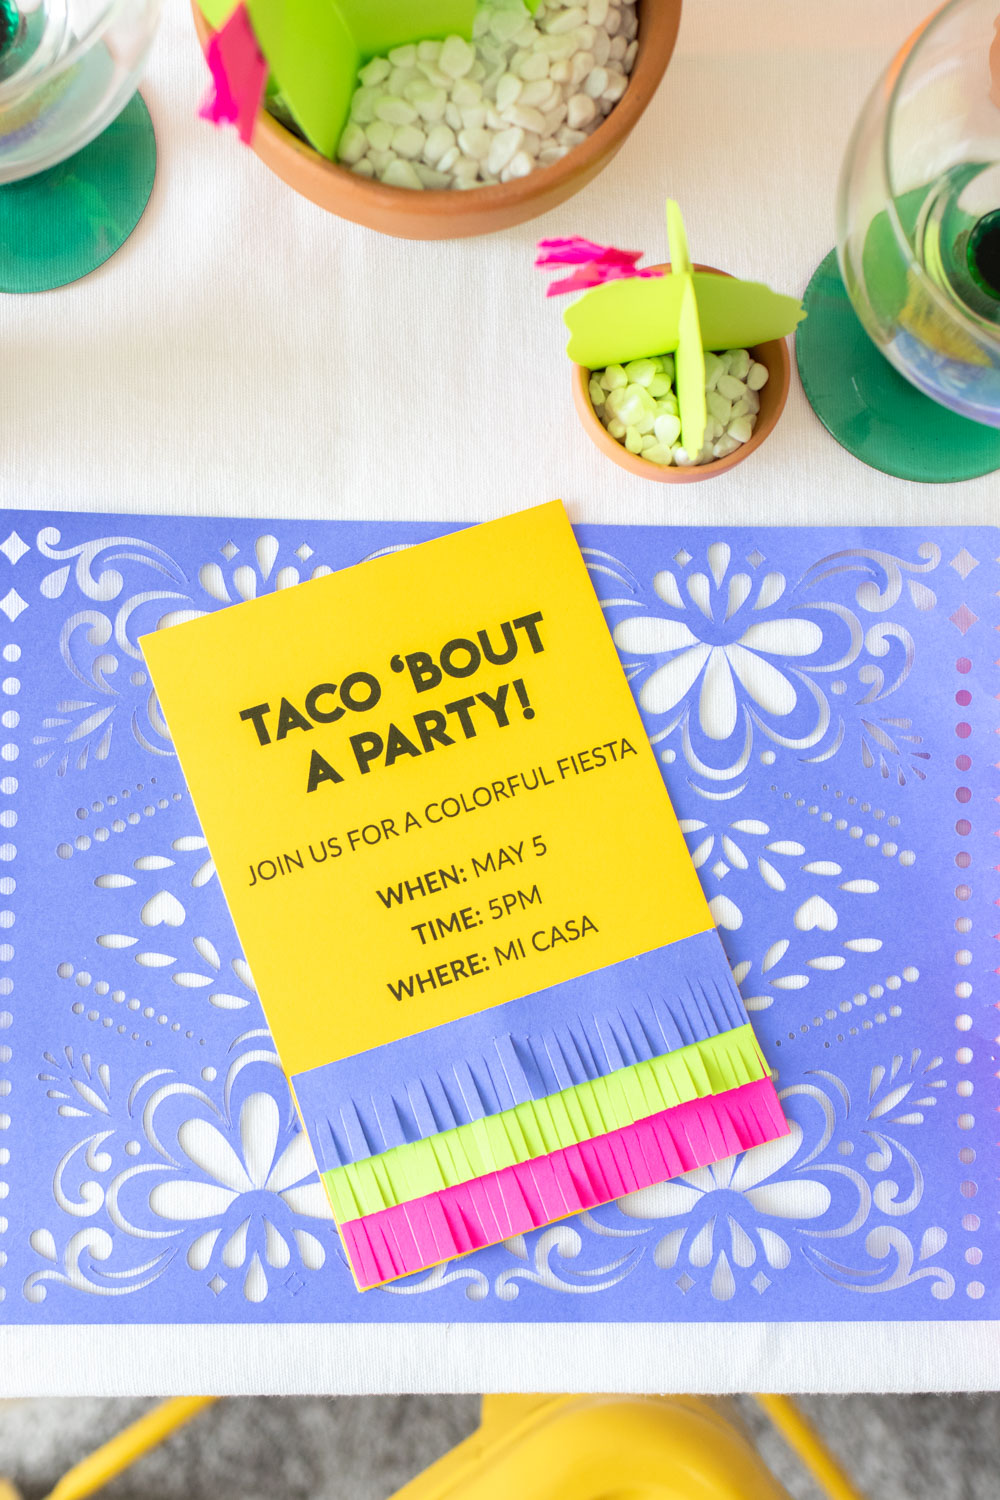 fringe invitations for fiesta party on purple placemats